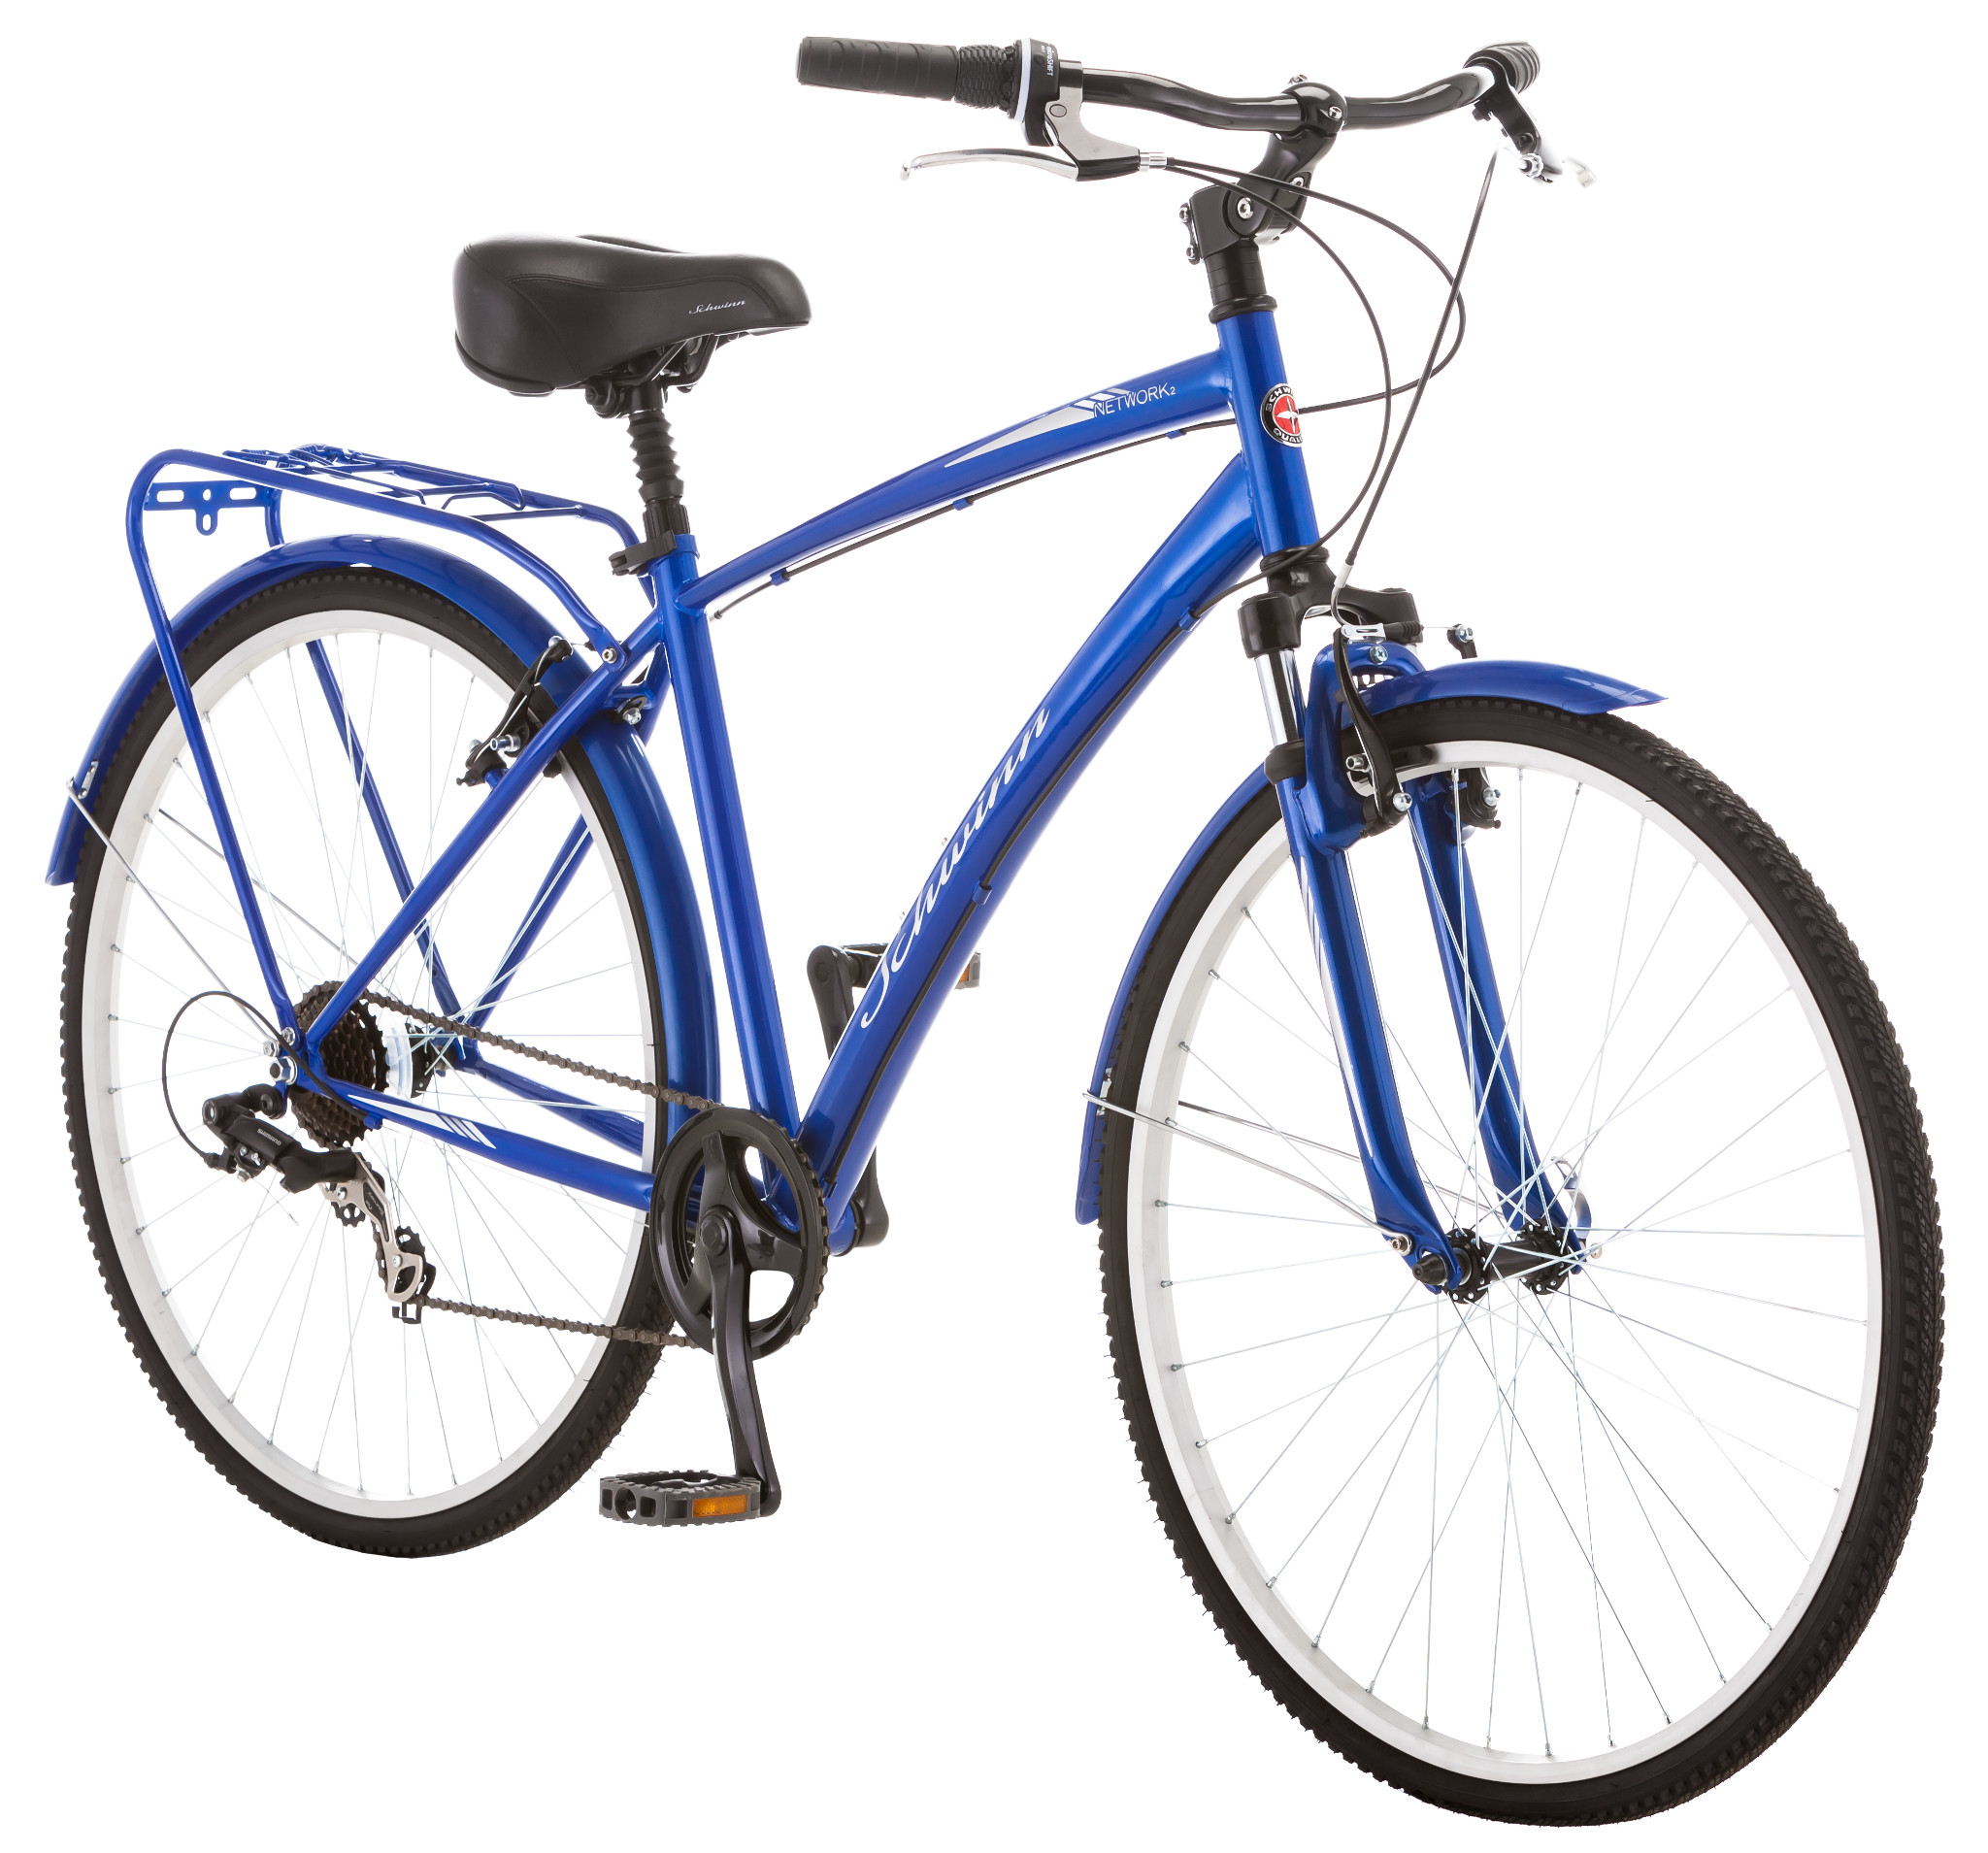 Schwinn Network 2.0 Men's 7 Speed Hybrid City Bike Blue